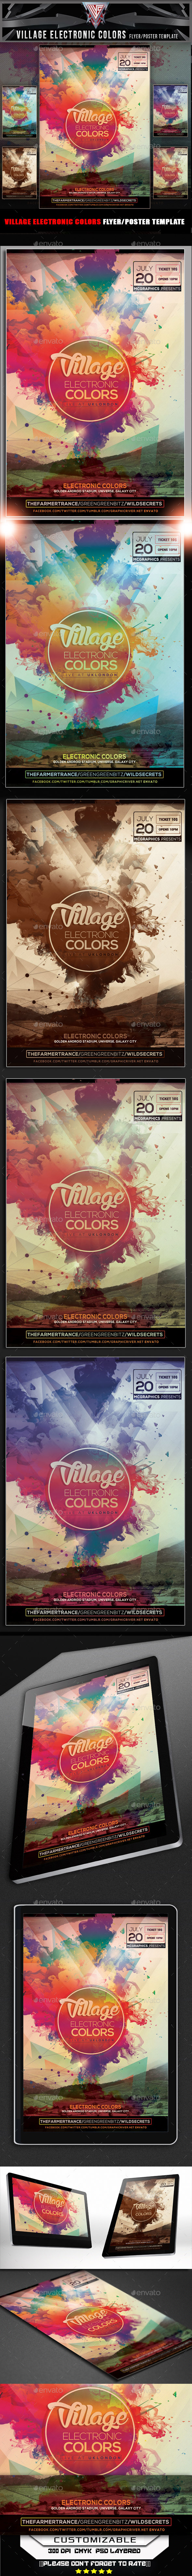 GraphicRiver Village Electronic Colors Flyer Template 11922344